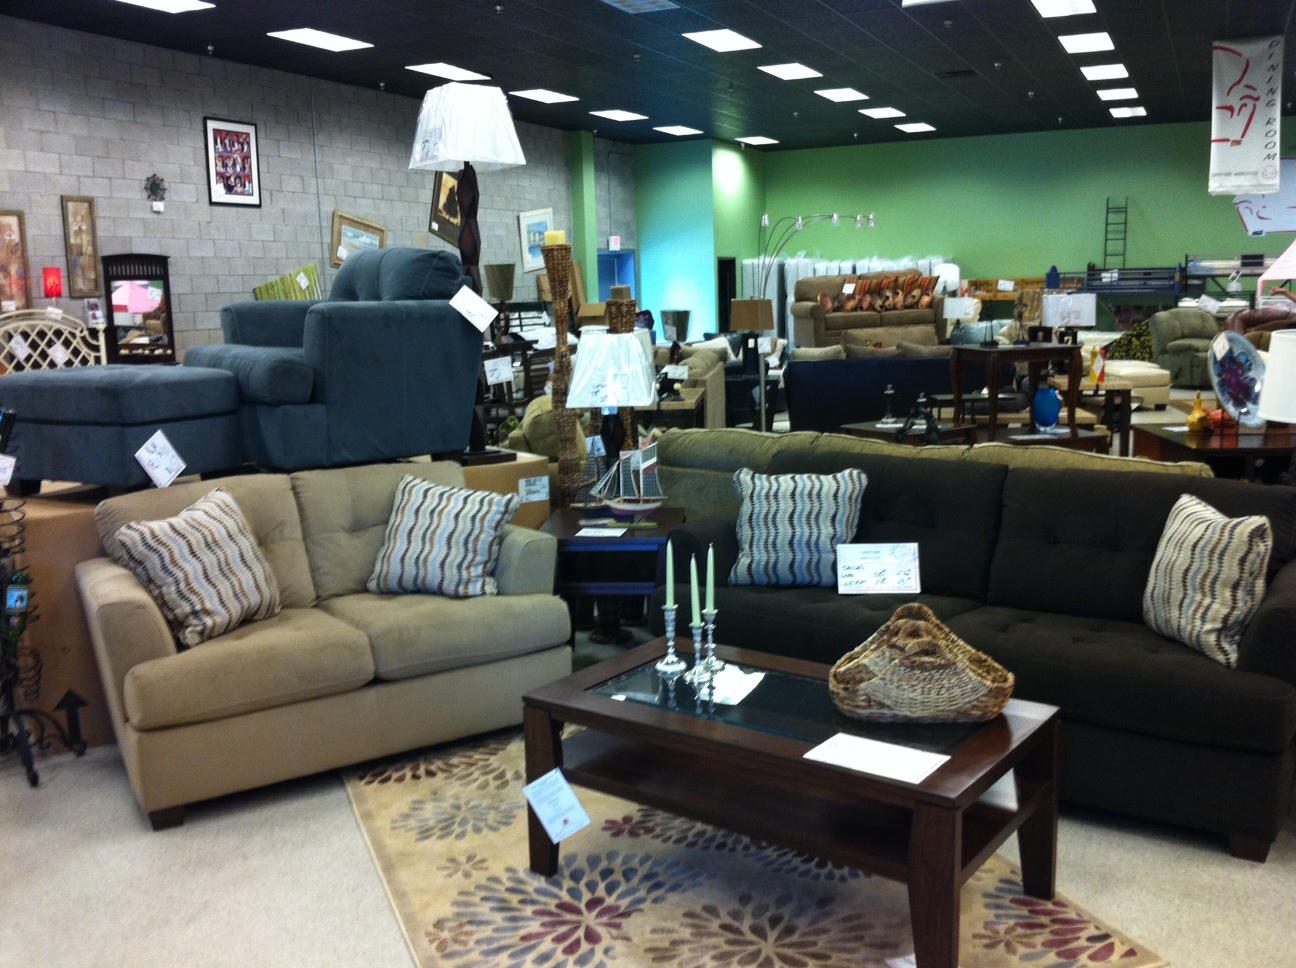 Ashley furniture customer service complaints department for Best furniture sites